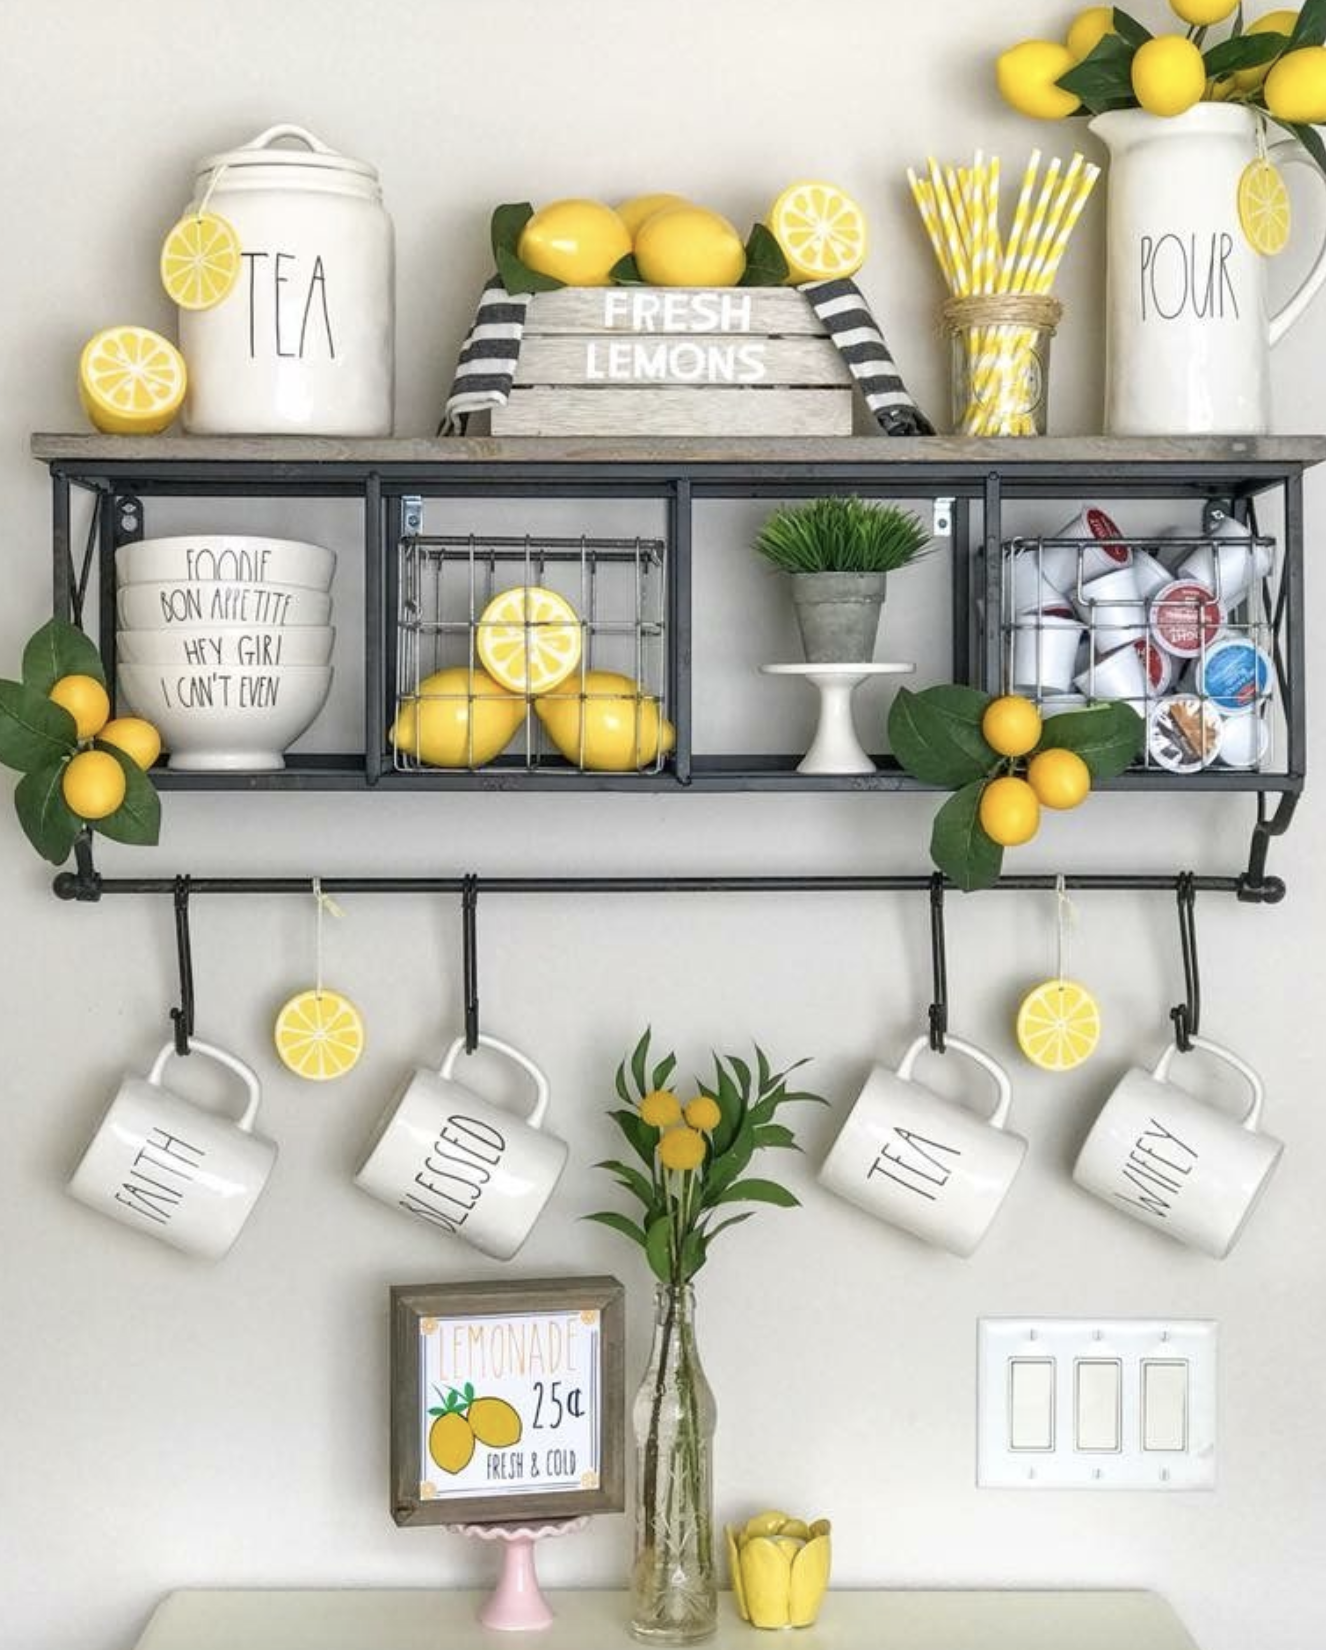 Amazing Lemon Kitchen Decor Ideas • LynnOak